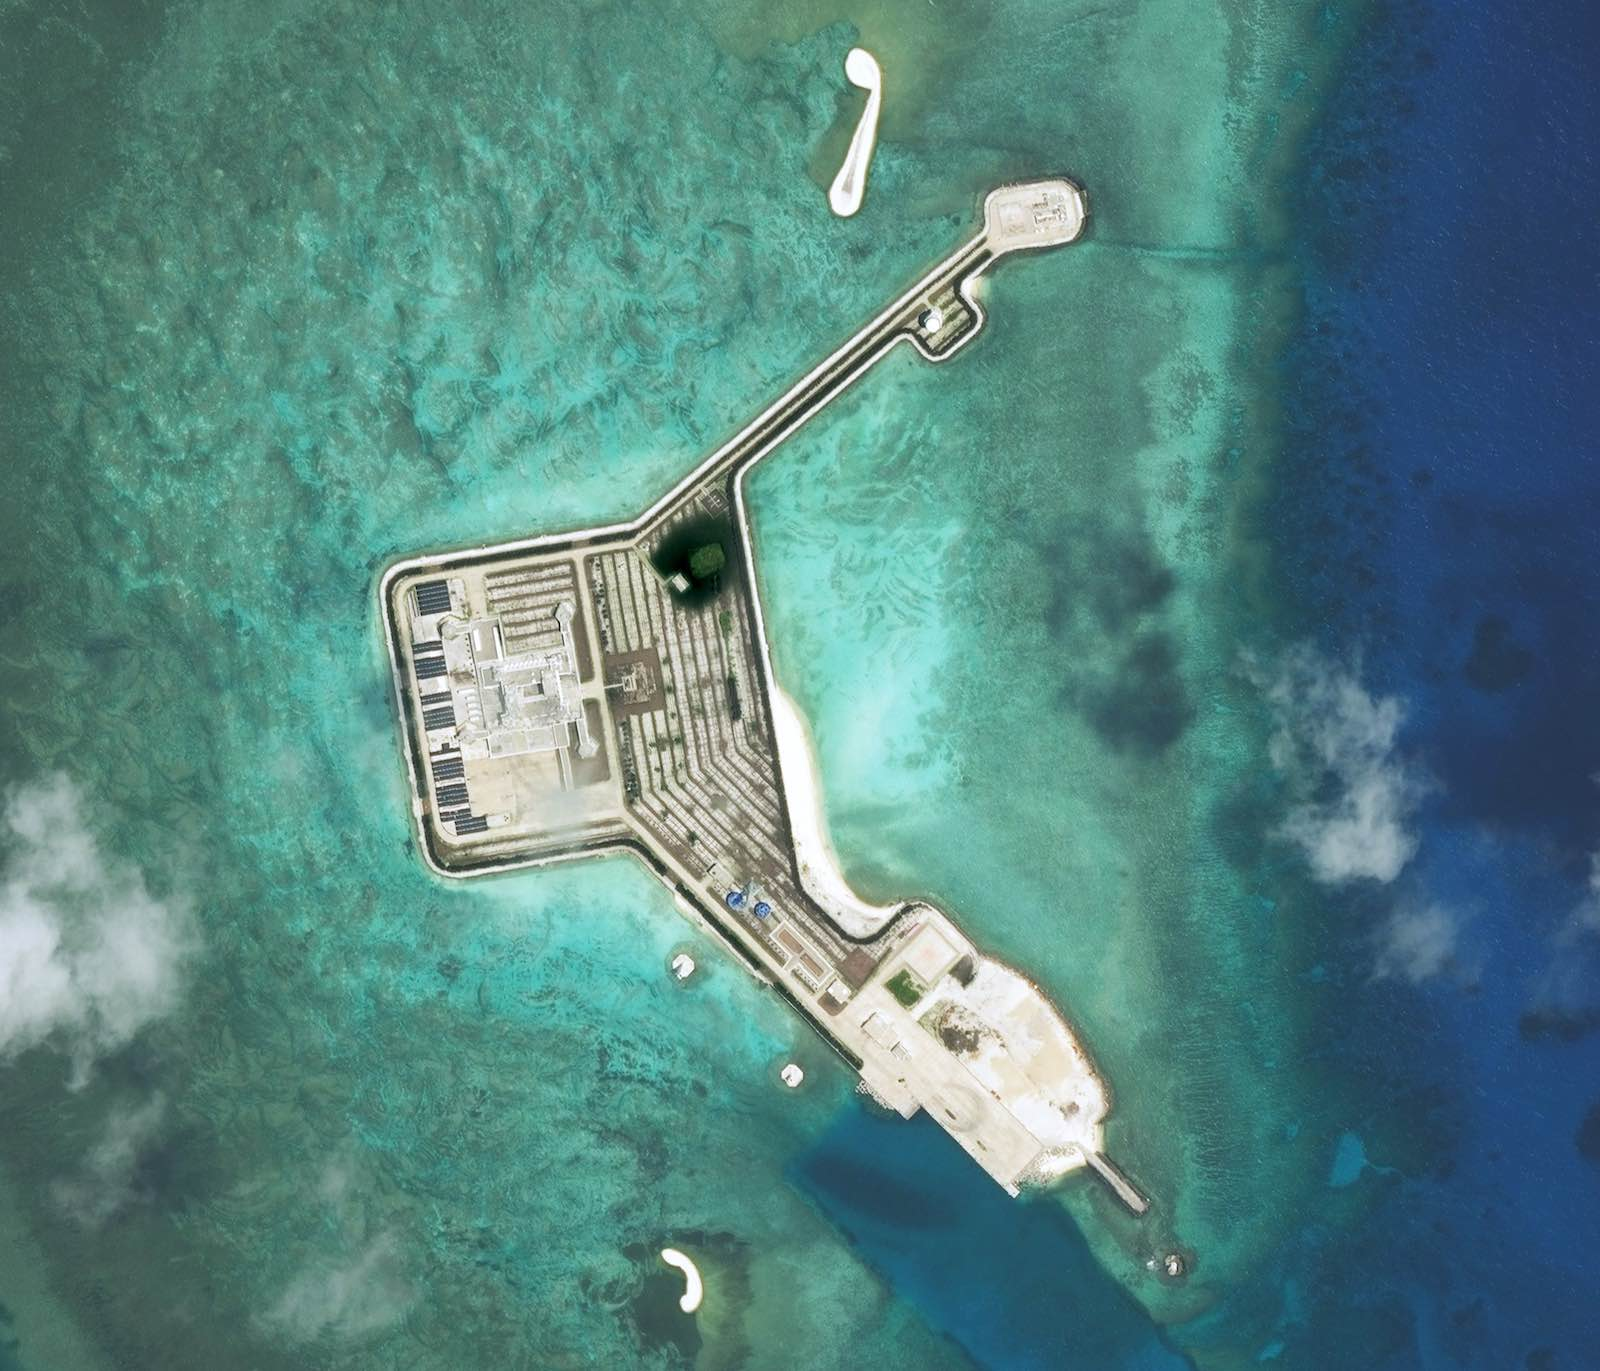 Structures constructed by China on the Gaven Reefs in the Tizard Bank of the Spratly Islands in the South China Sea (DigitalGlobe via Getty Images)